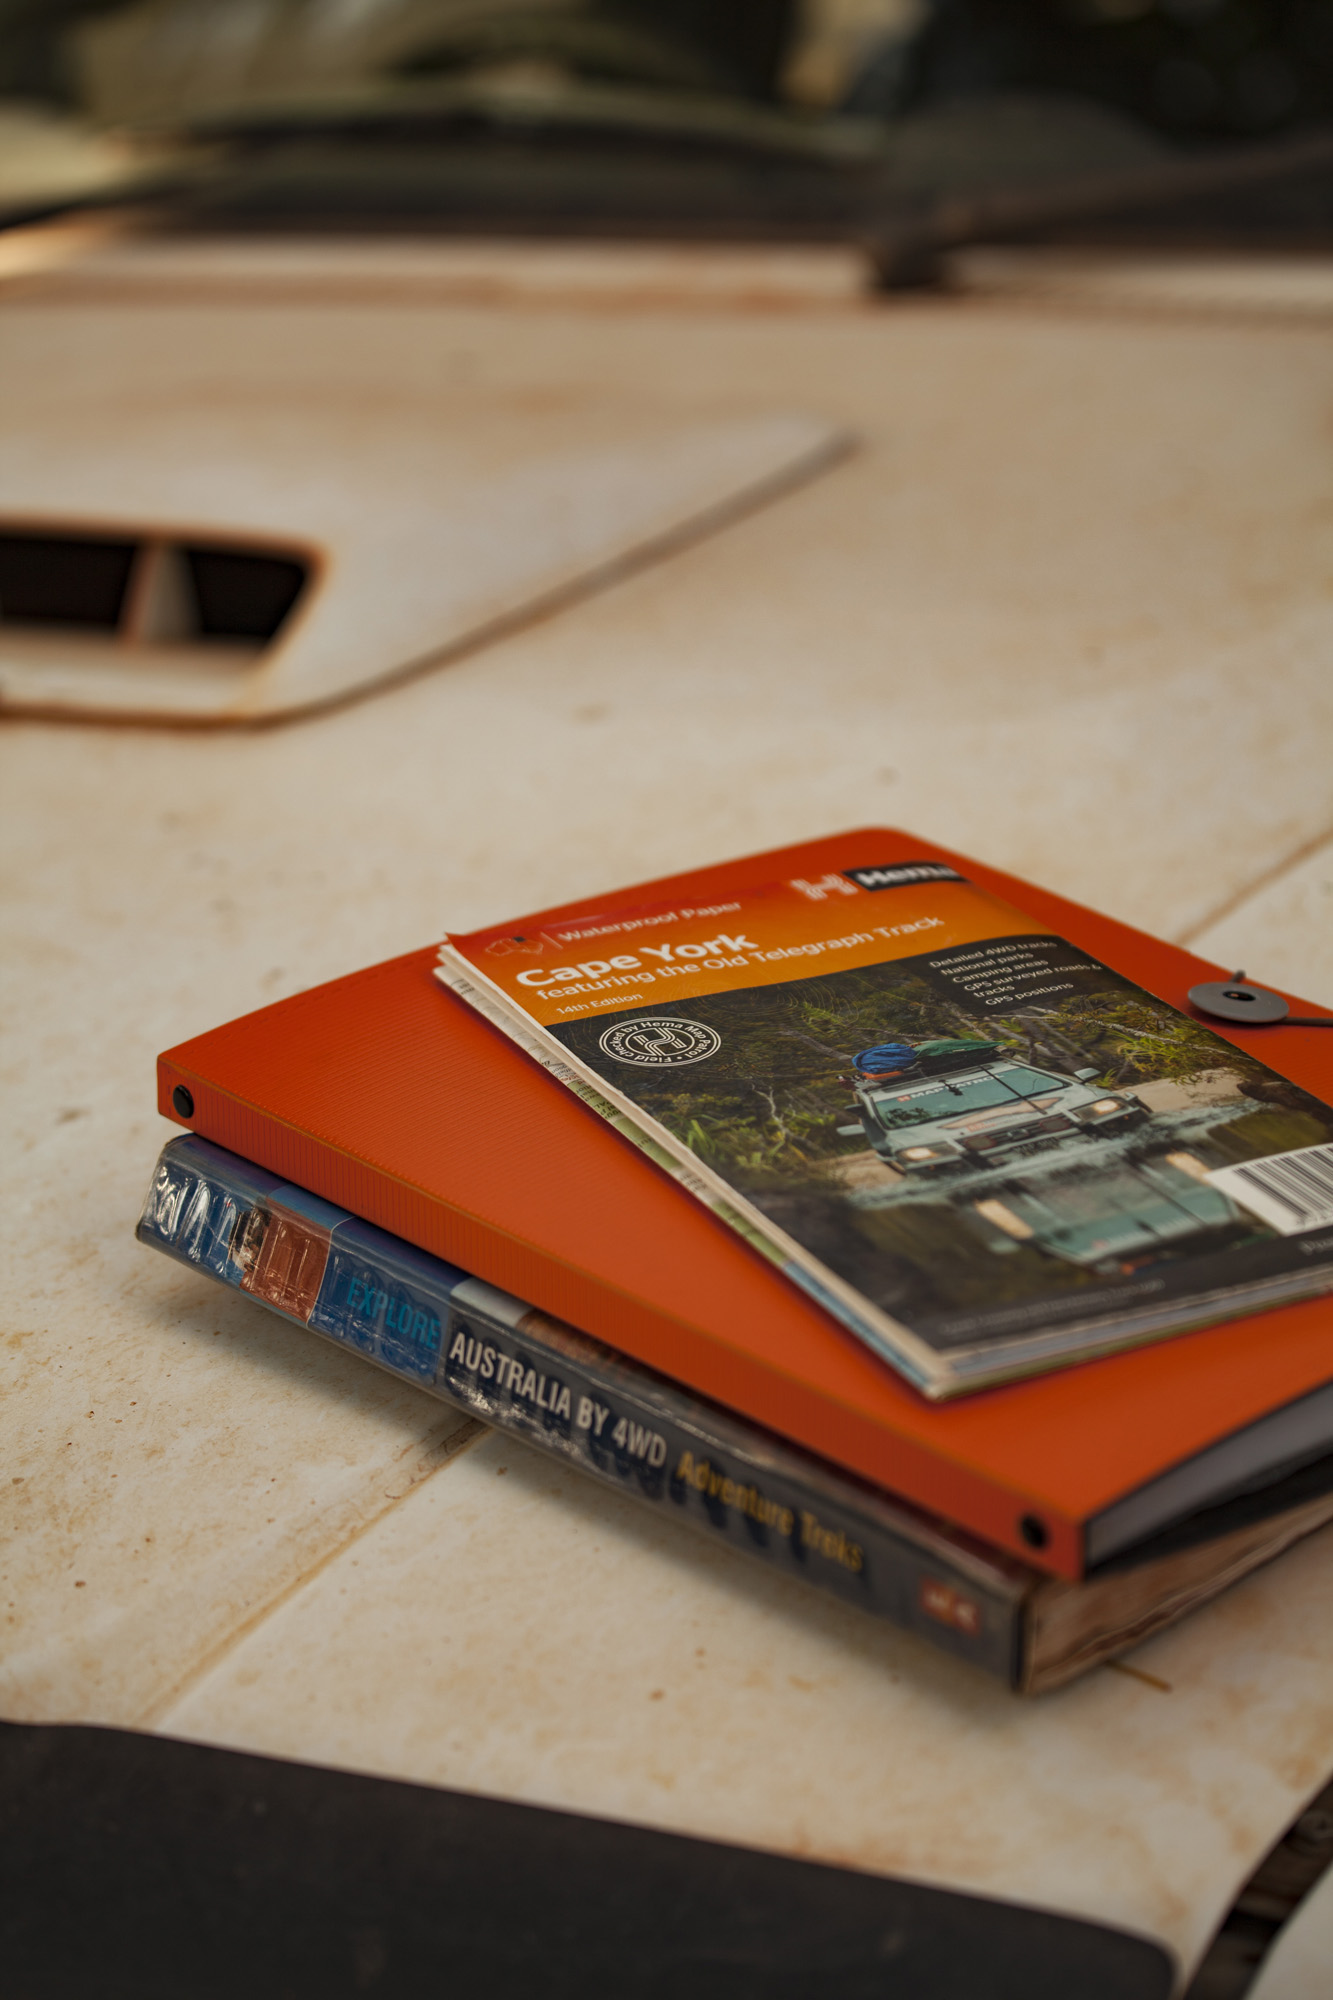 HEMA map (not guide), along with an old guidebook & our itinerary.